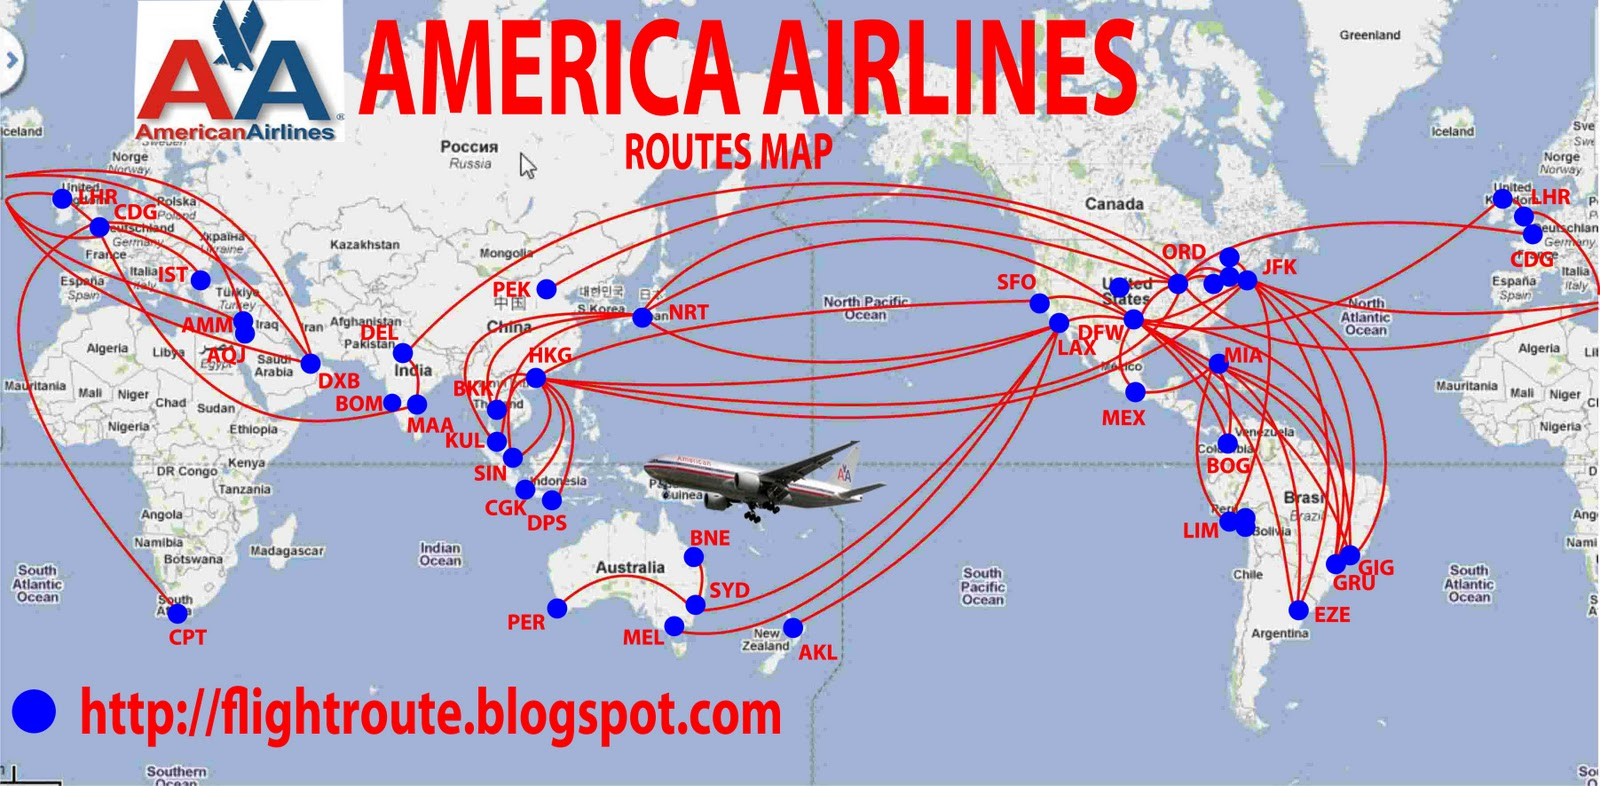 Australian Airlines American Airlines Routes Map